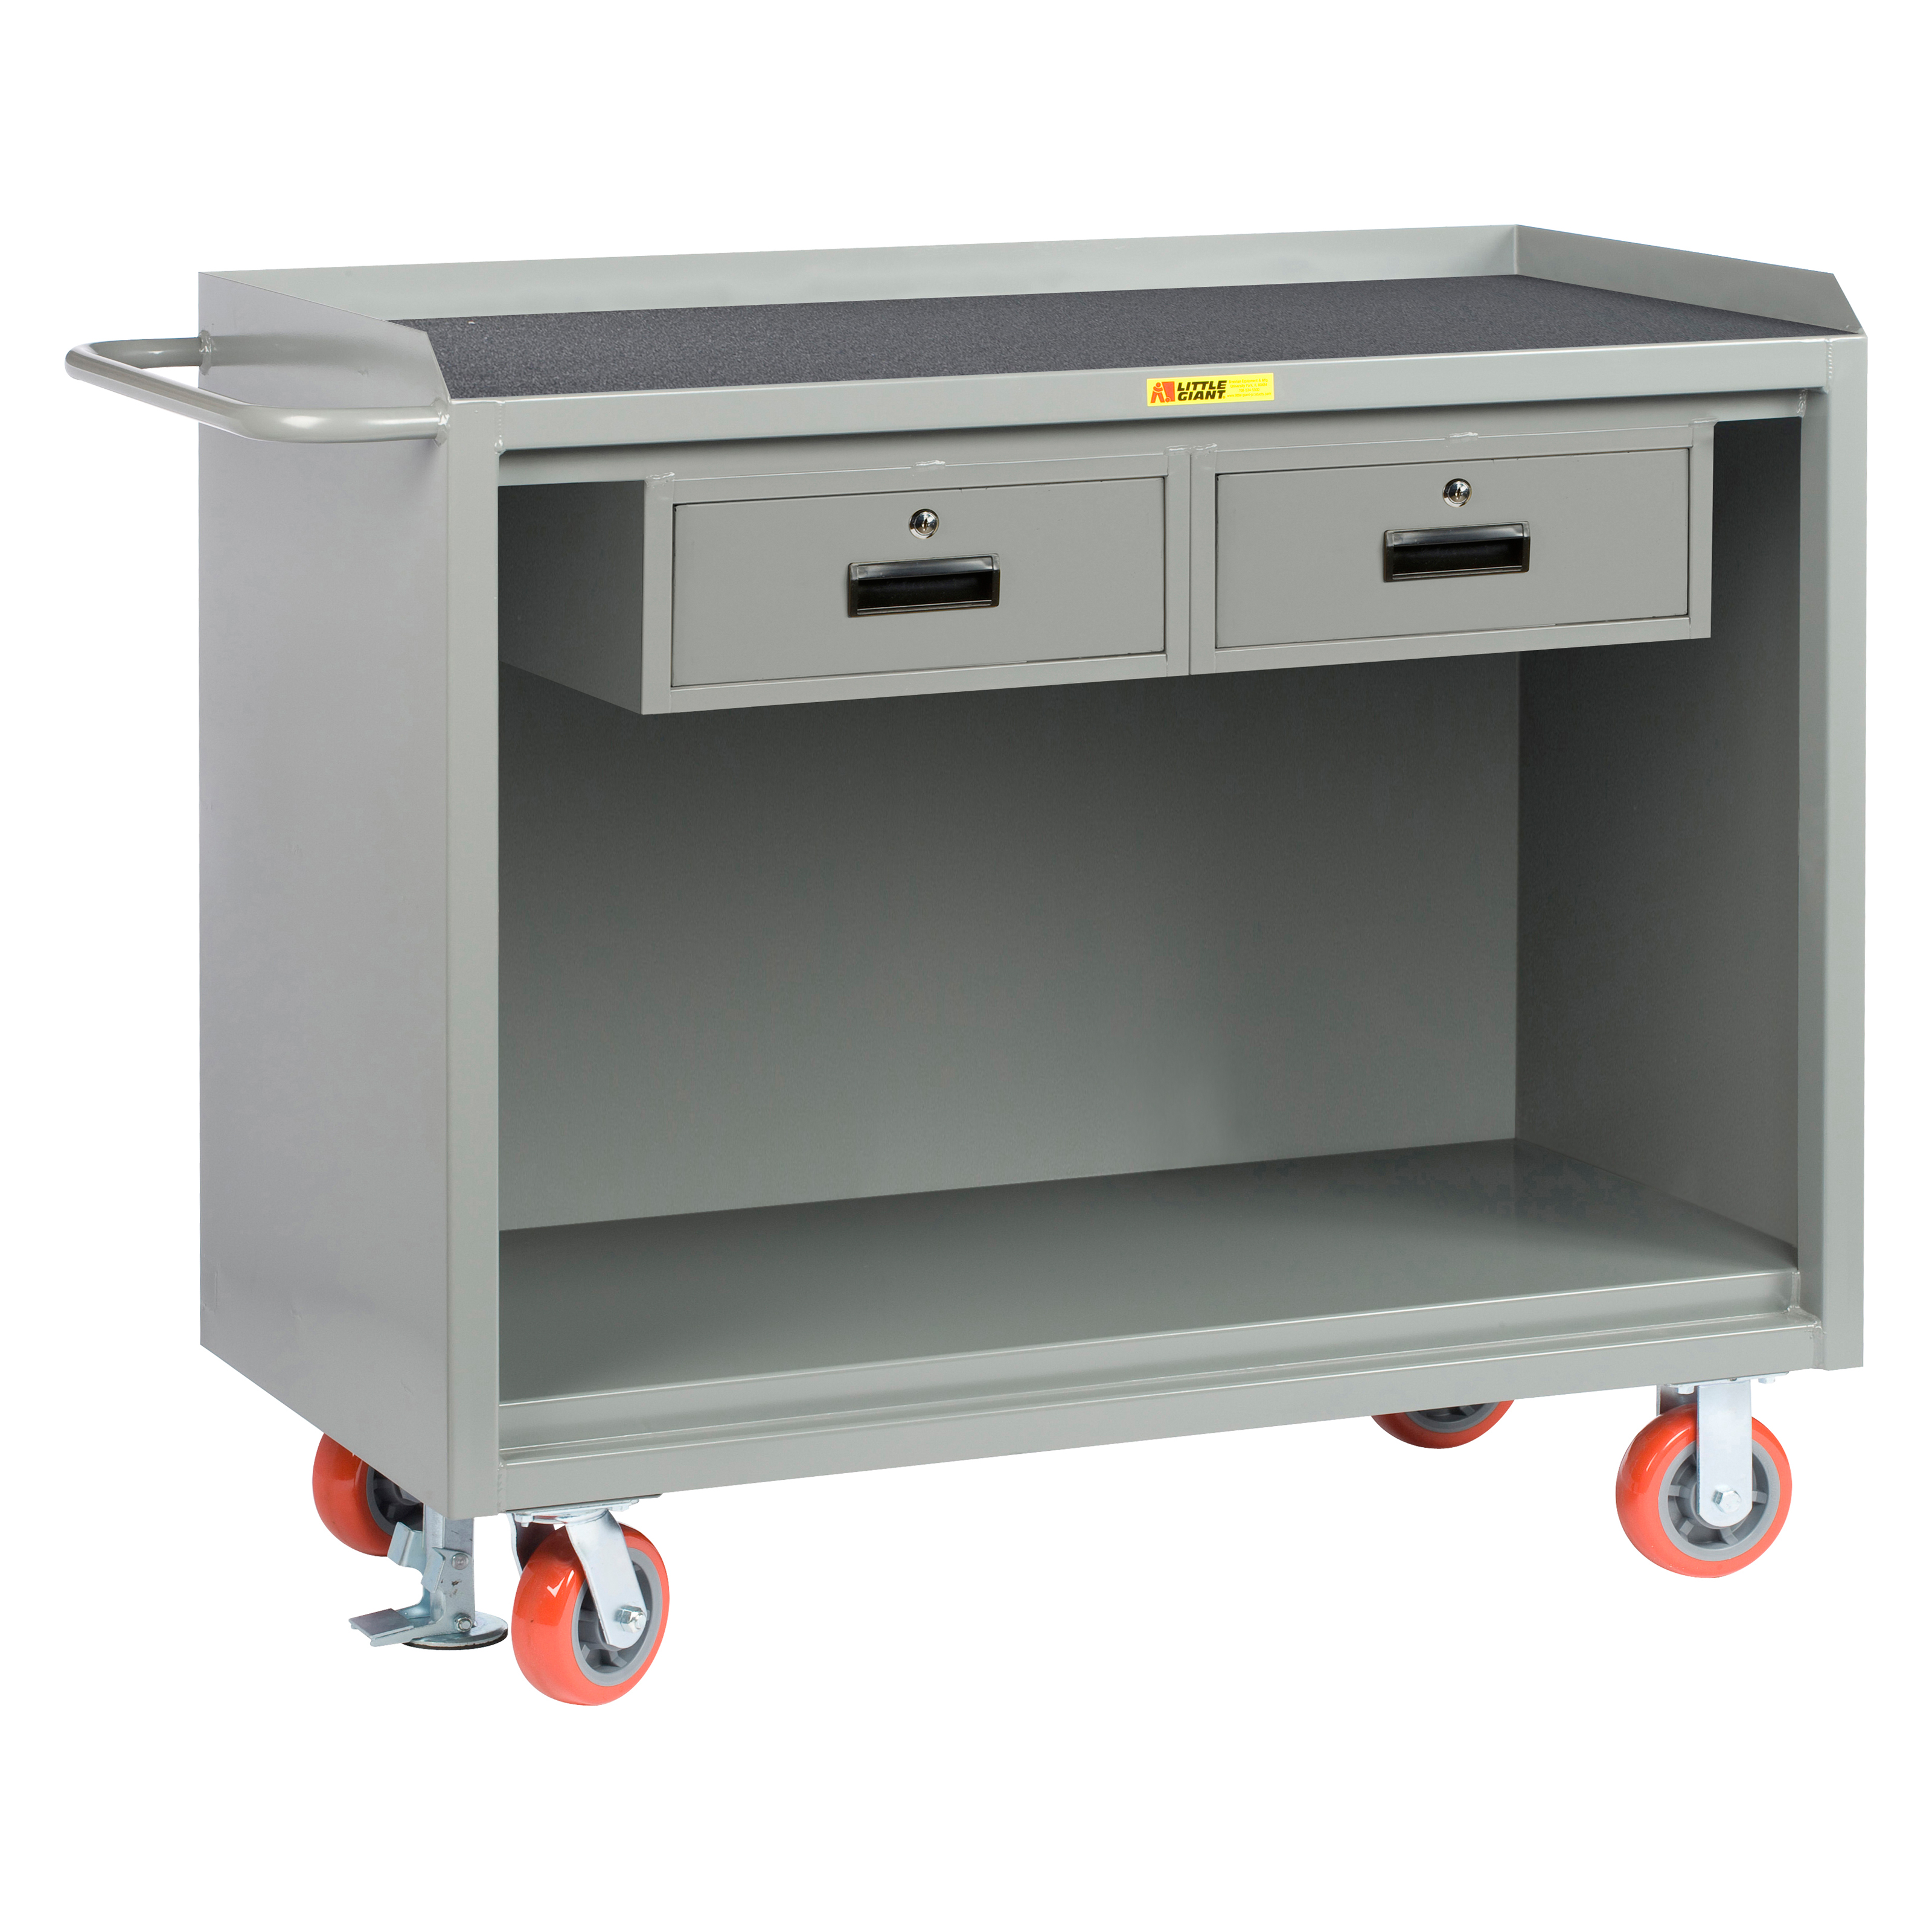 wood storage hd top image rolling garage cabinet utility drawer seville garden cabinets one workbench four